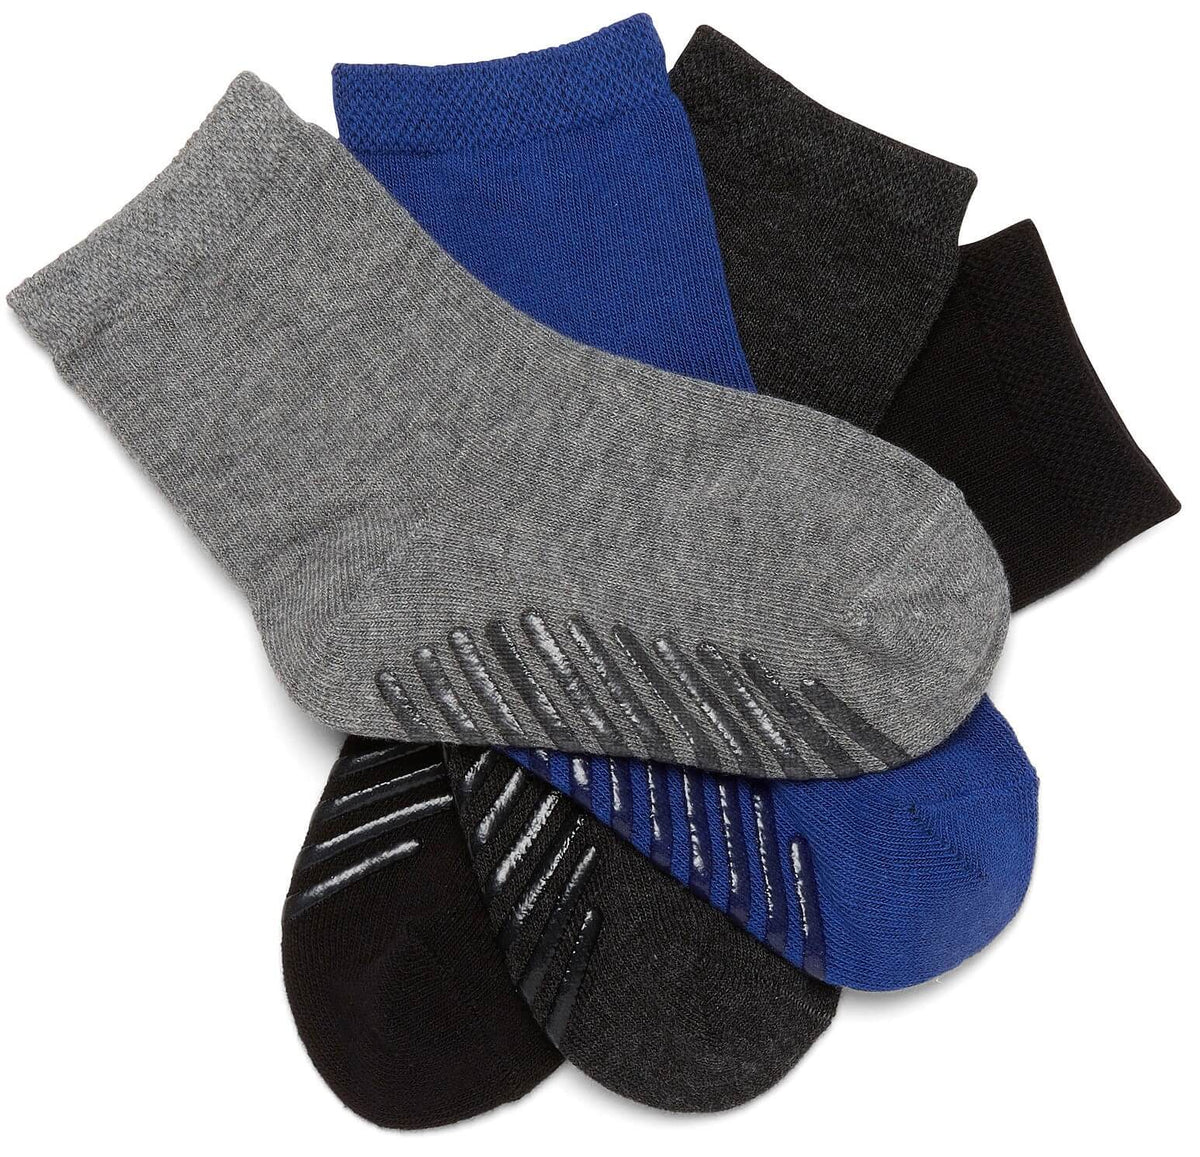 Grip Socks for Toddlers & Kids 2-4 Years 4-Pack - Gripjoy Socks